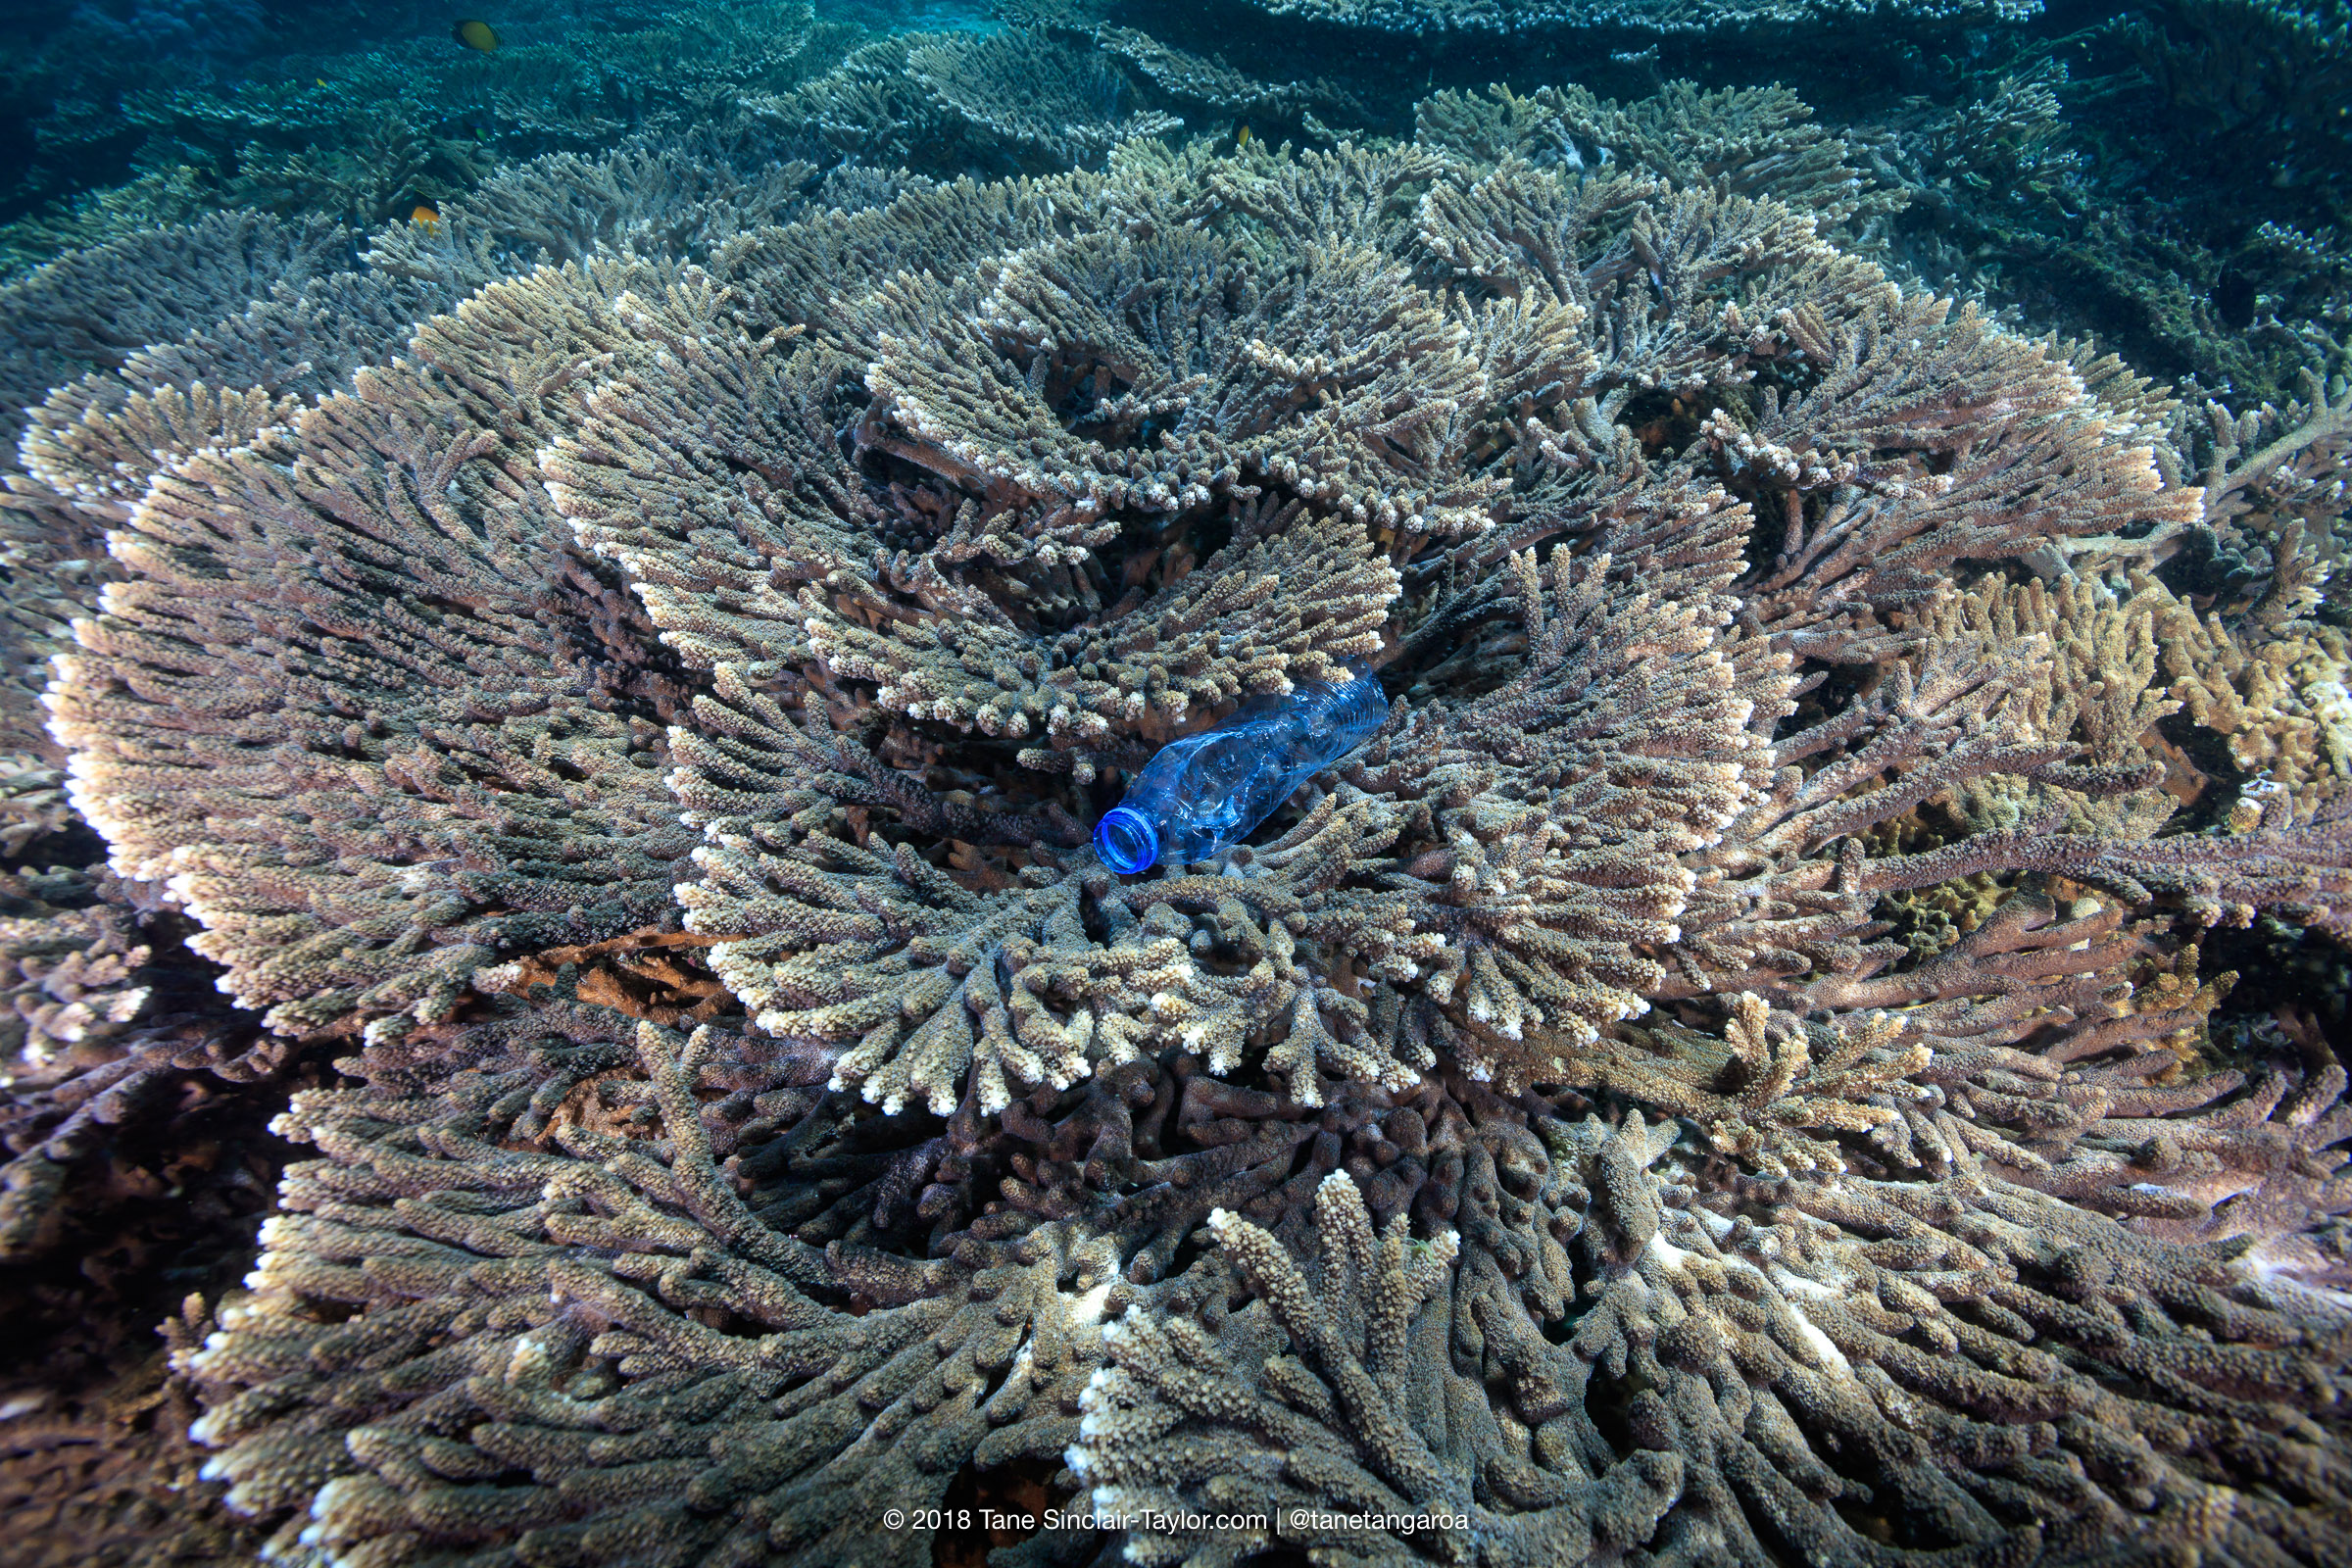 Plastic in oceans killing corals